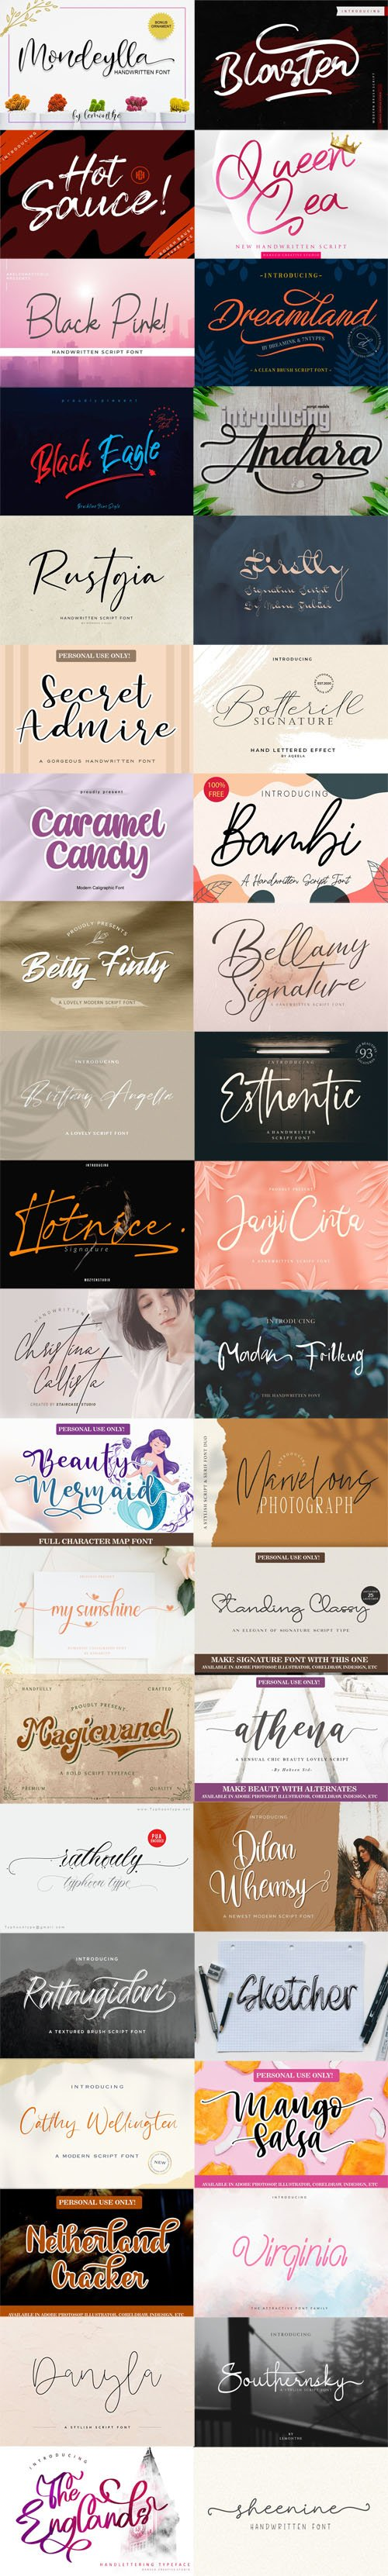 40 New Fonts 2020 Collection